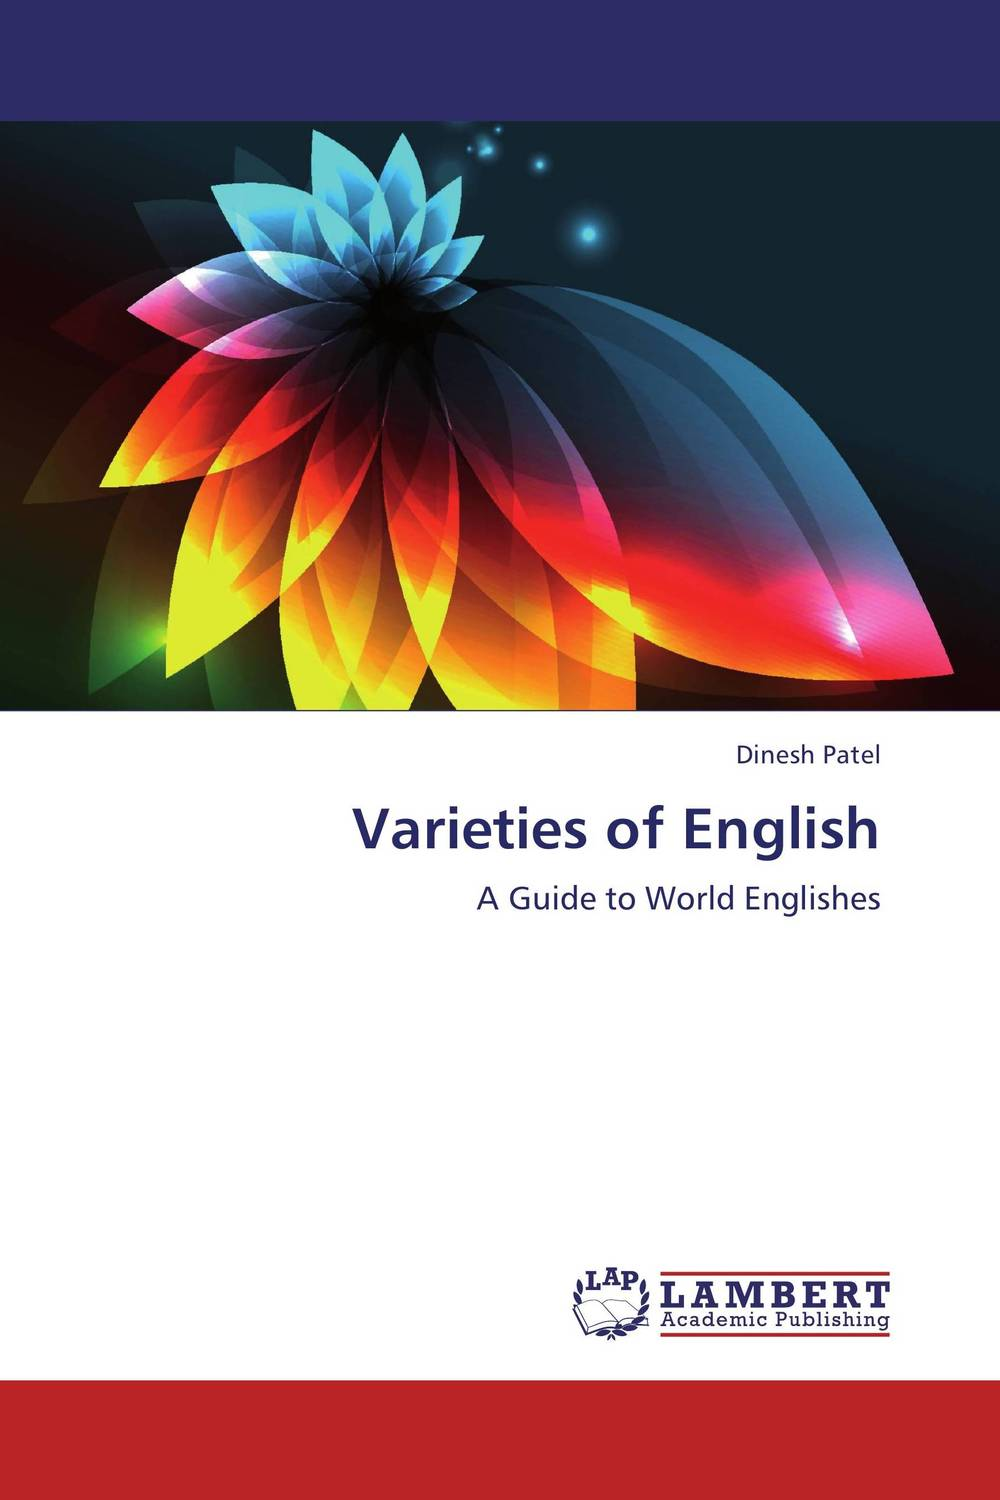 Varieties of English united as one